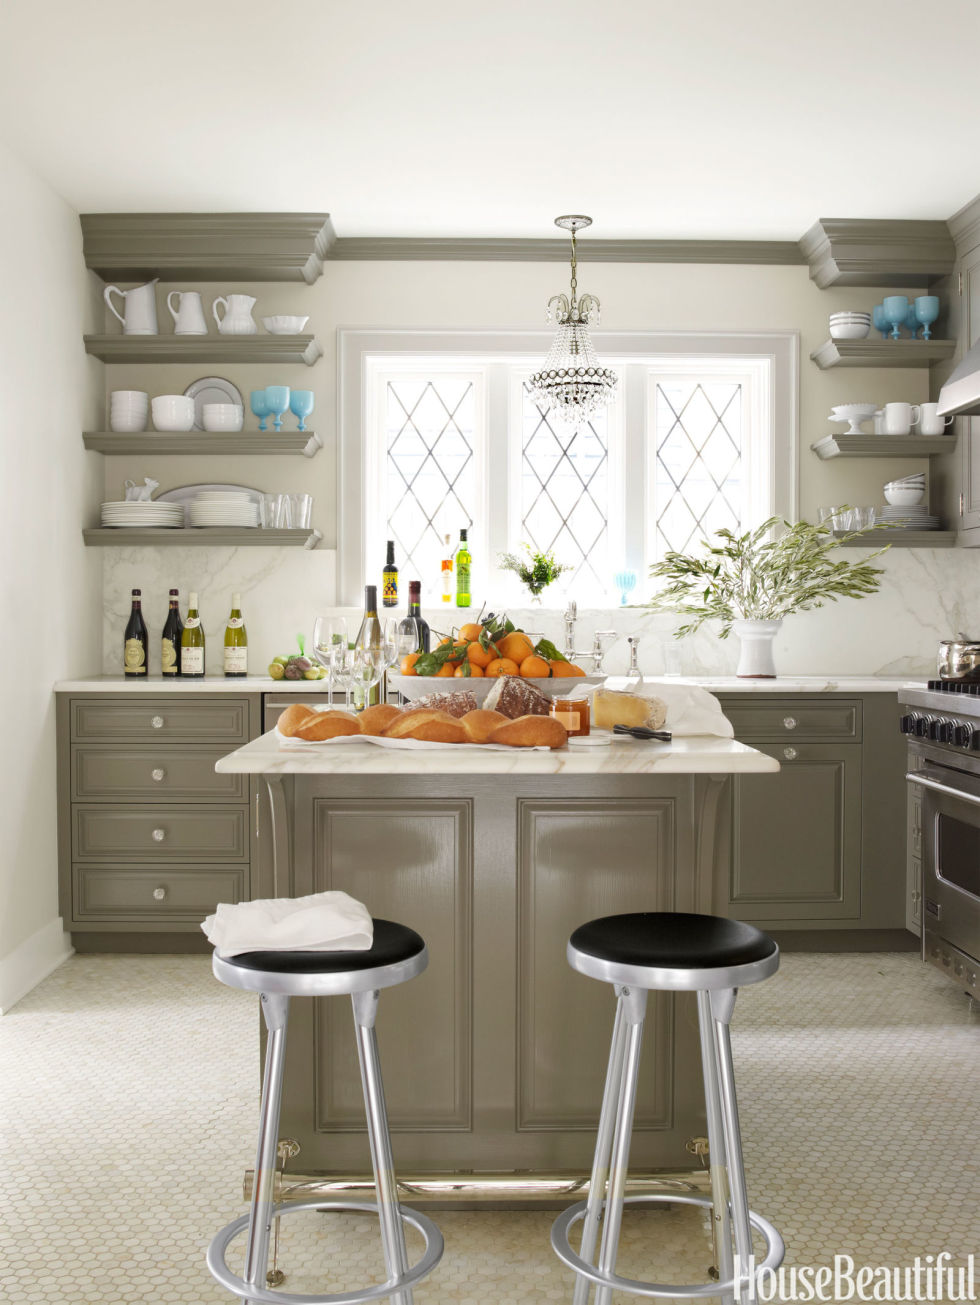 20 easy home decorating ideas - interior decorating and decor tips XOAWJIX